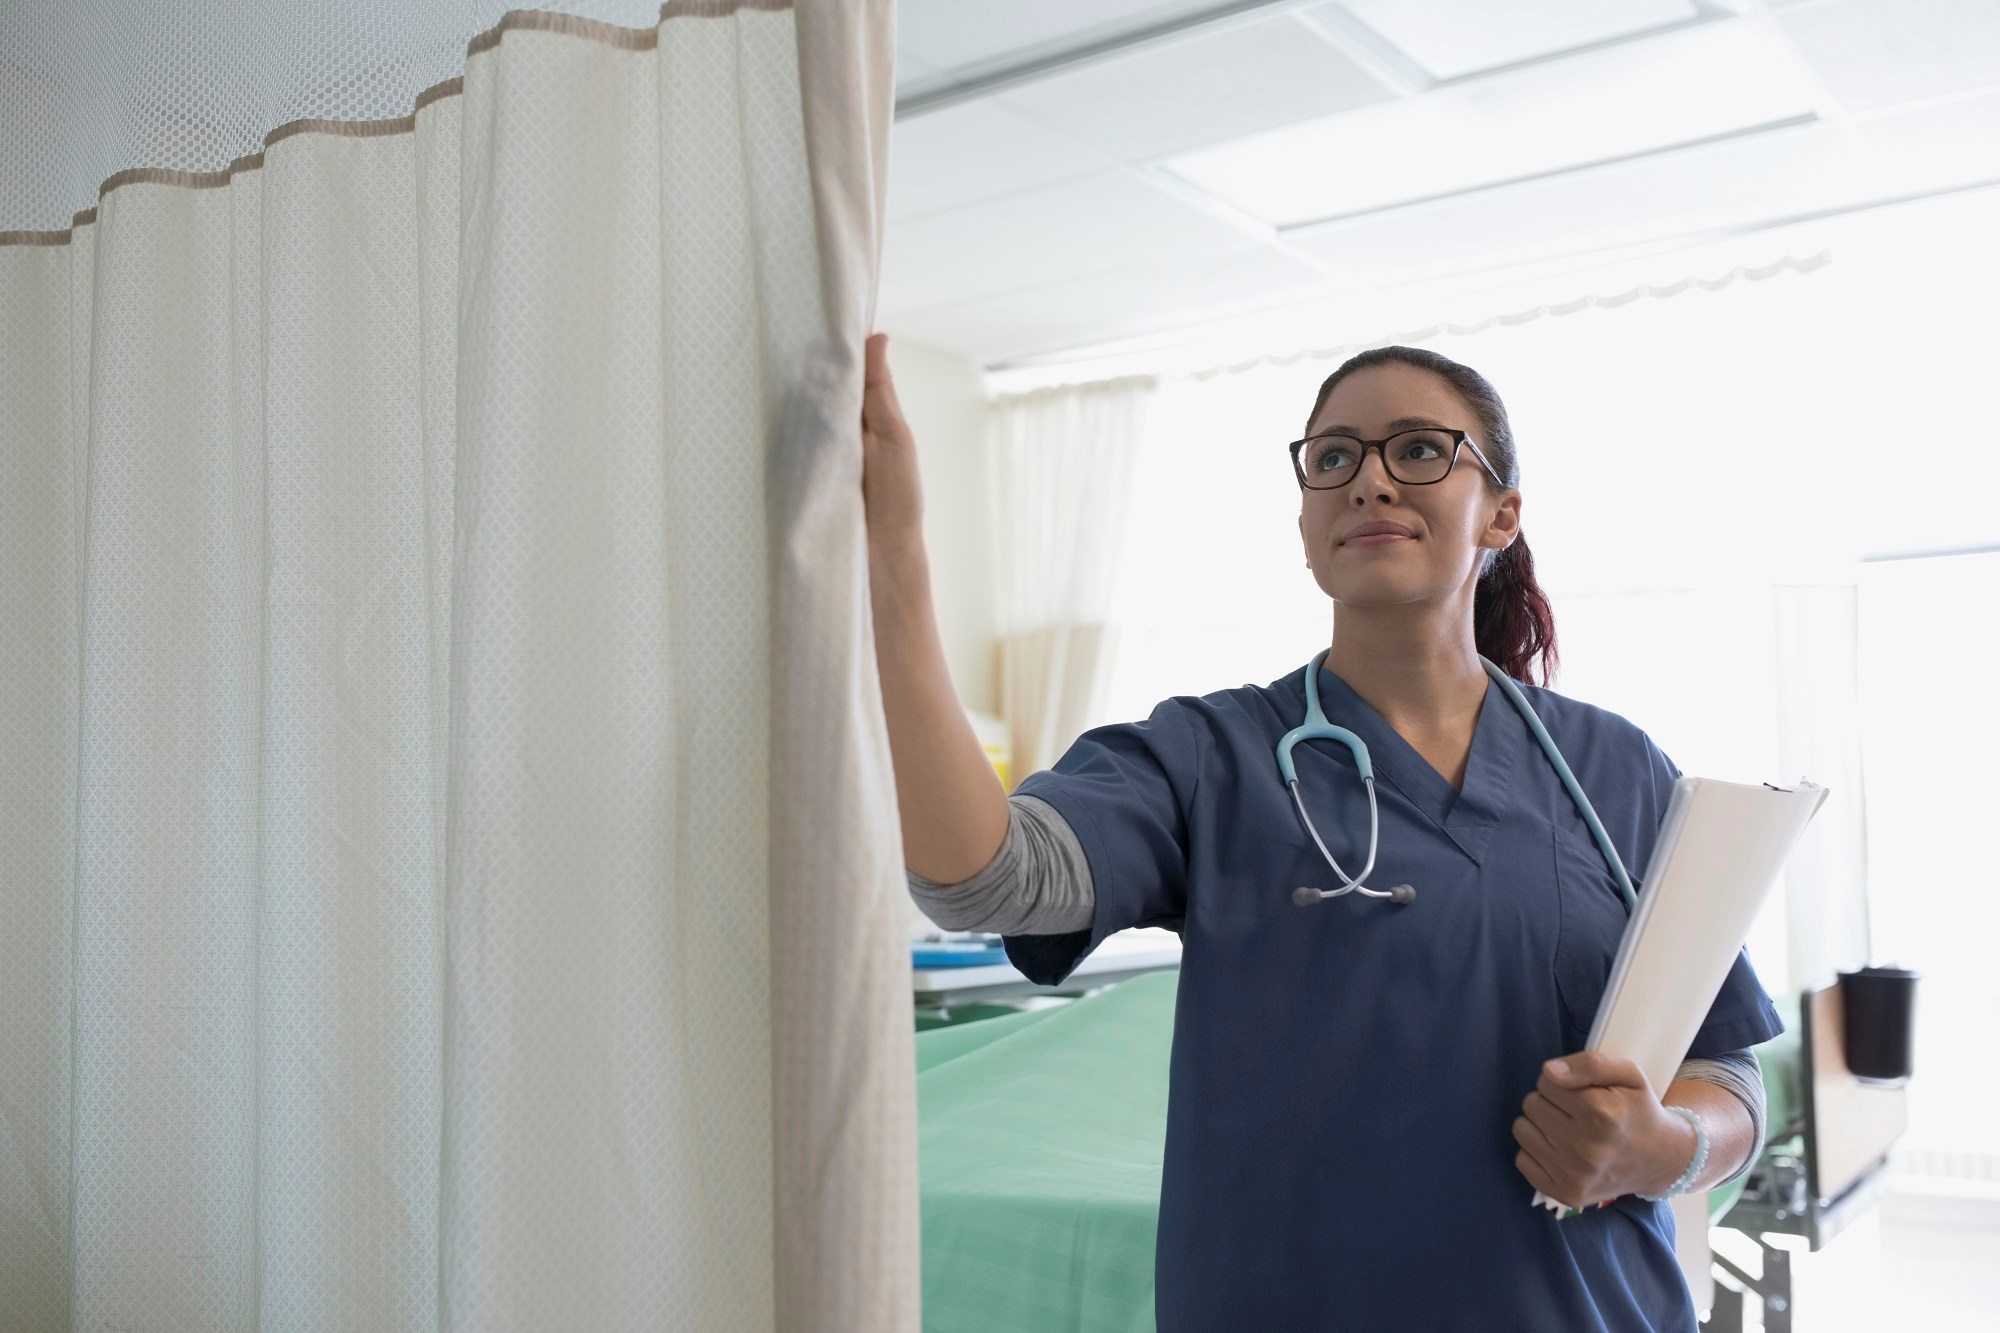 Curtains surrounding patient beds become progressively contaminated with bacteria.